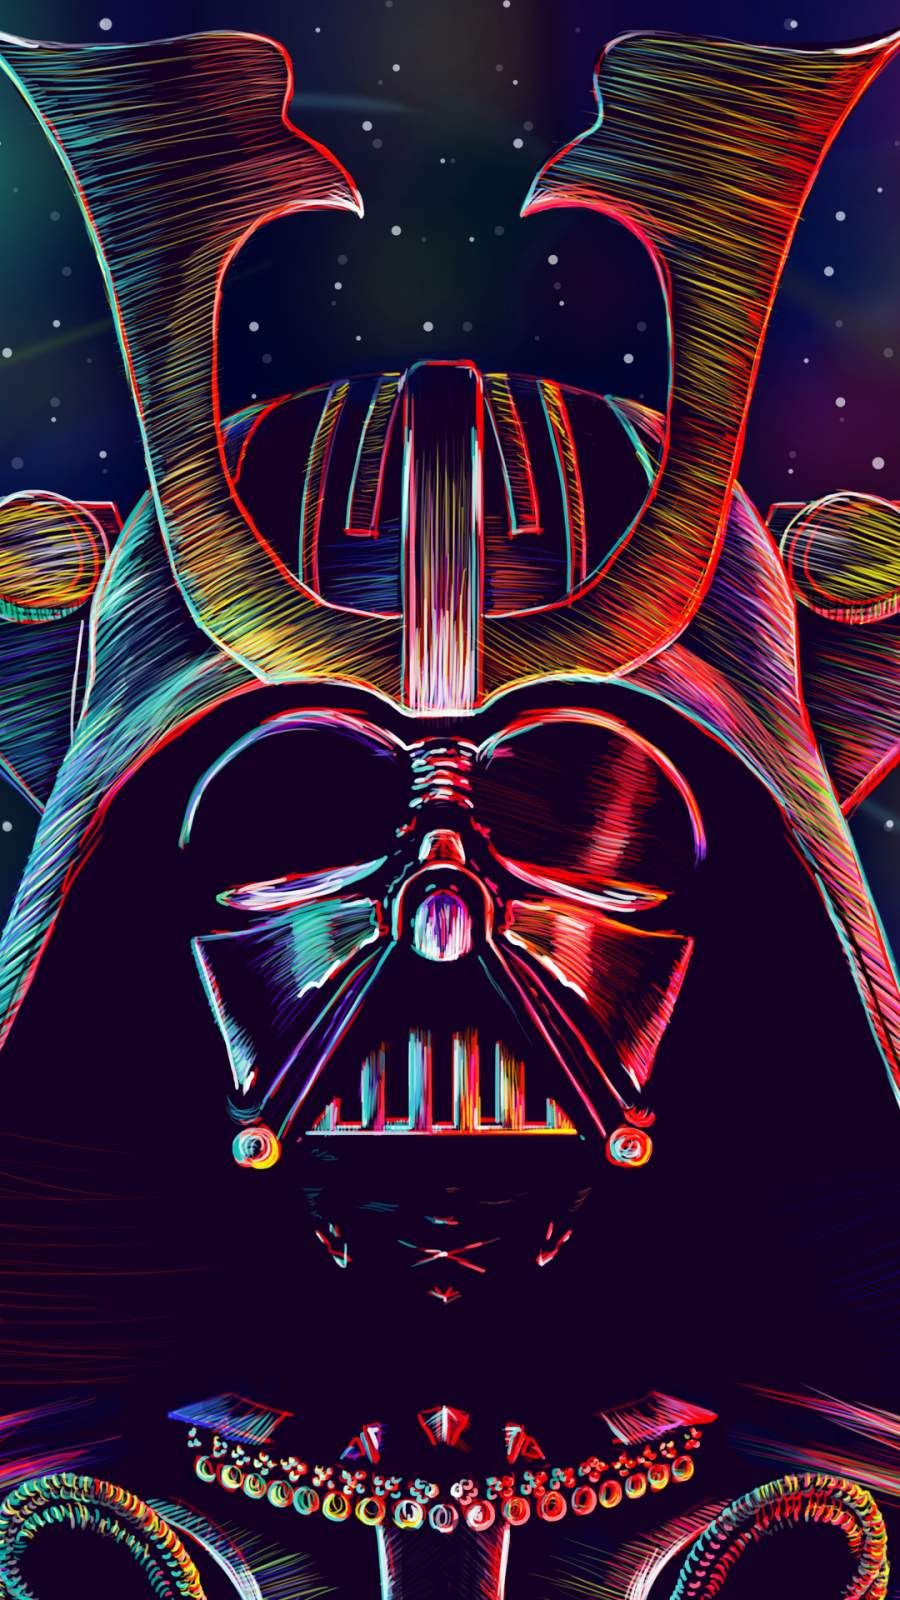 Darth Vader 4k Iphone Wallpaper Star Wars Art Star Wars Diy Darth Vader